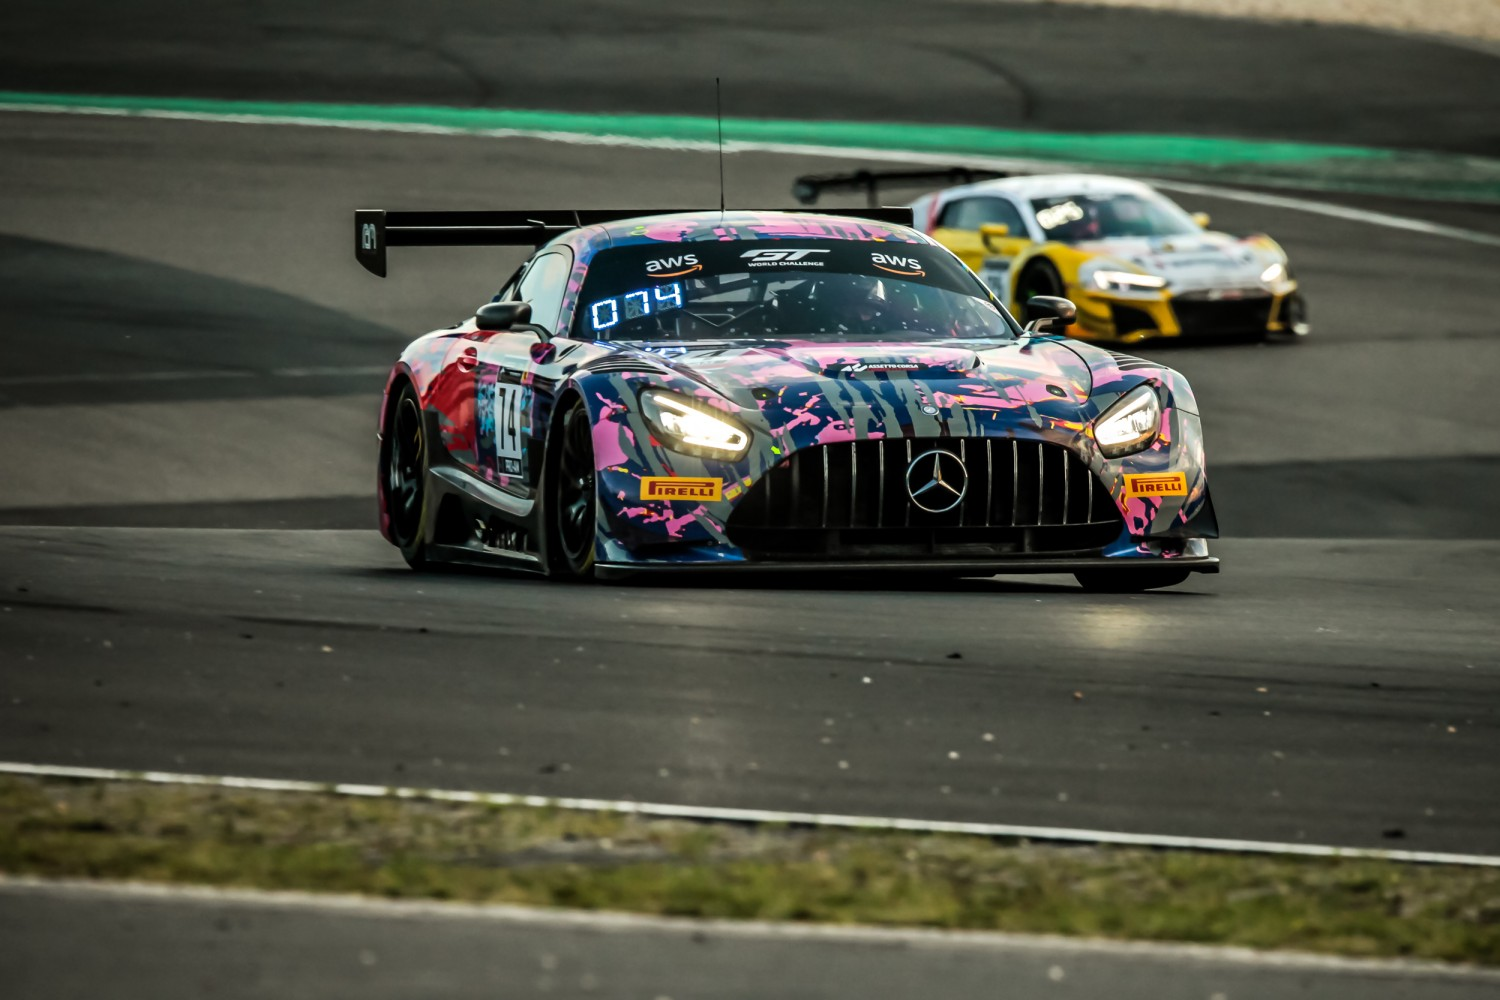 #74 Ram Racing GBR Mercedes-AMG GT3 Pro-Am Cup Remon Vos NDL Martin Konrad AUT Tom Onslow-Cole GBR, Qualifying  | SRO / Patrick Hecq Photography